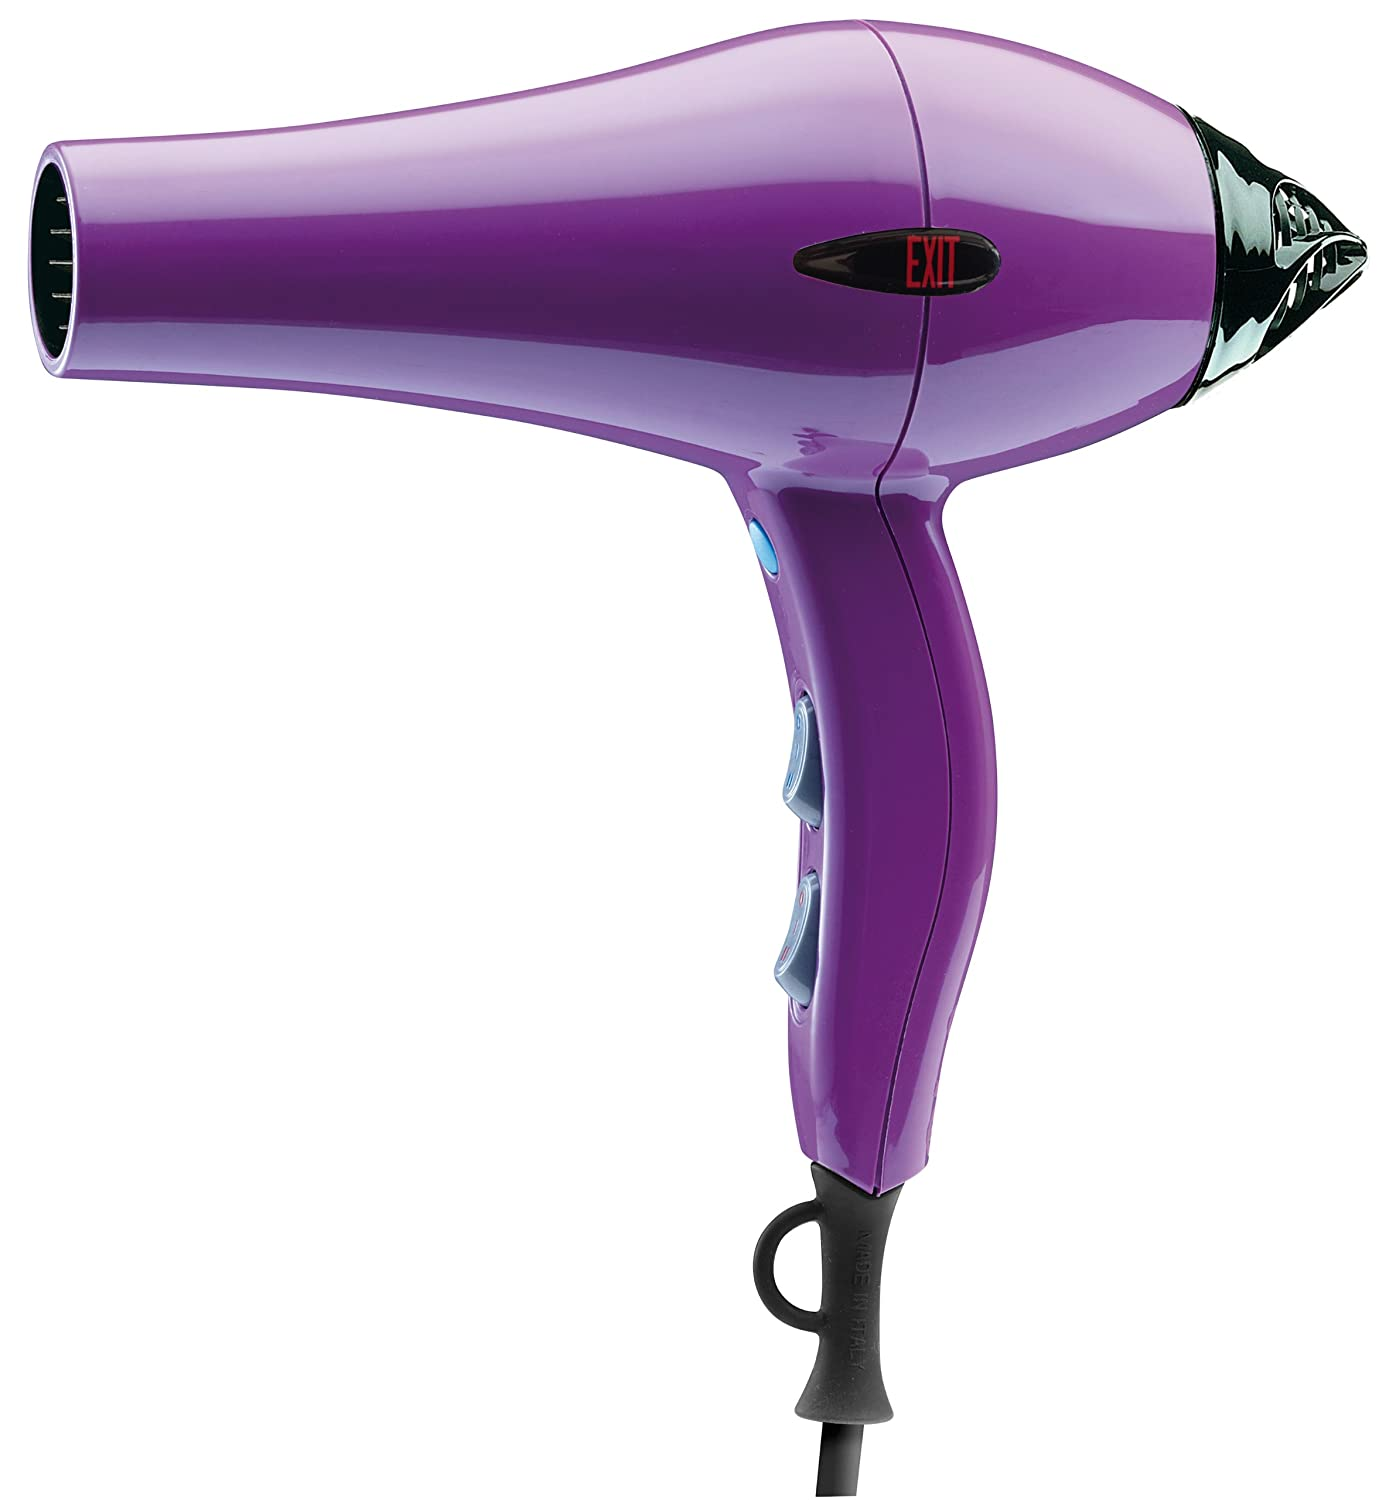 Reliable hairdryer that professionals choose